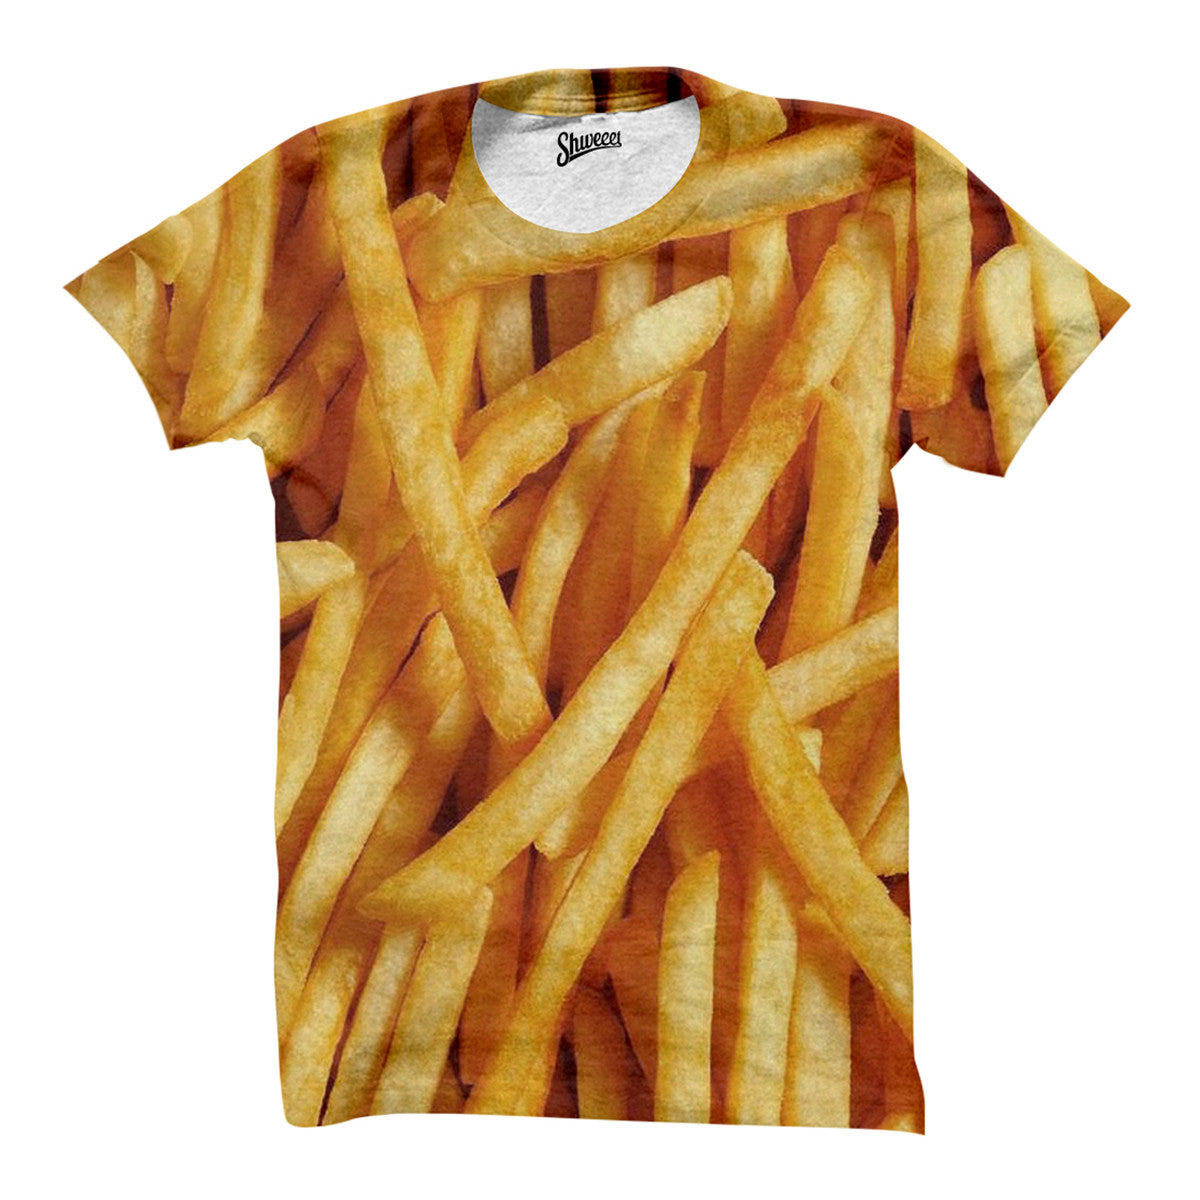 French Fries T shirt - Shweeet